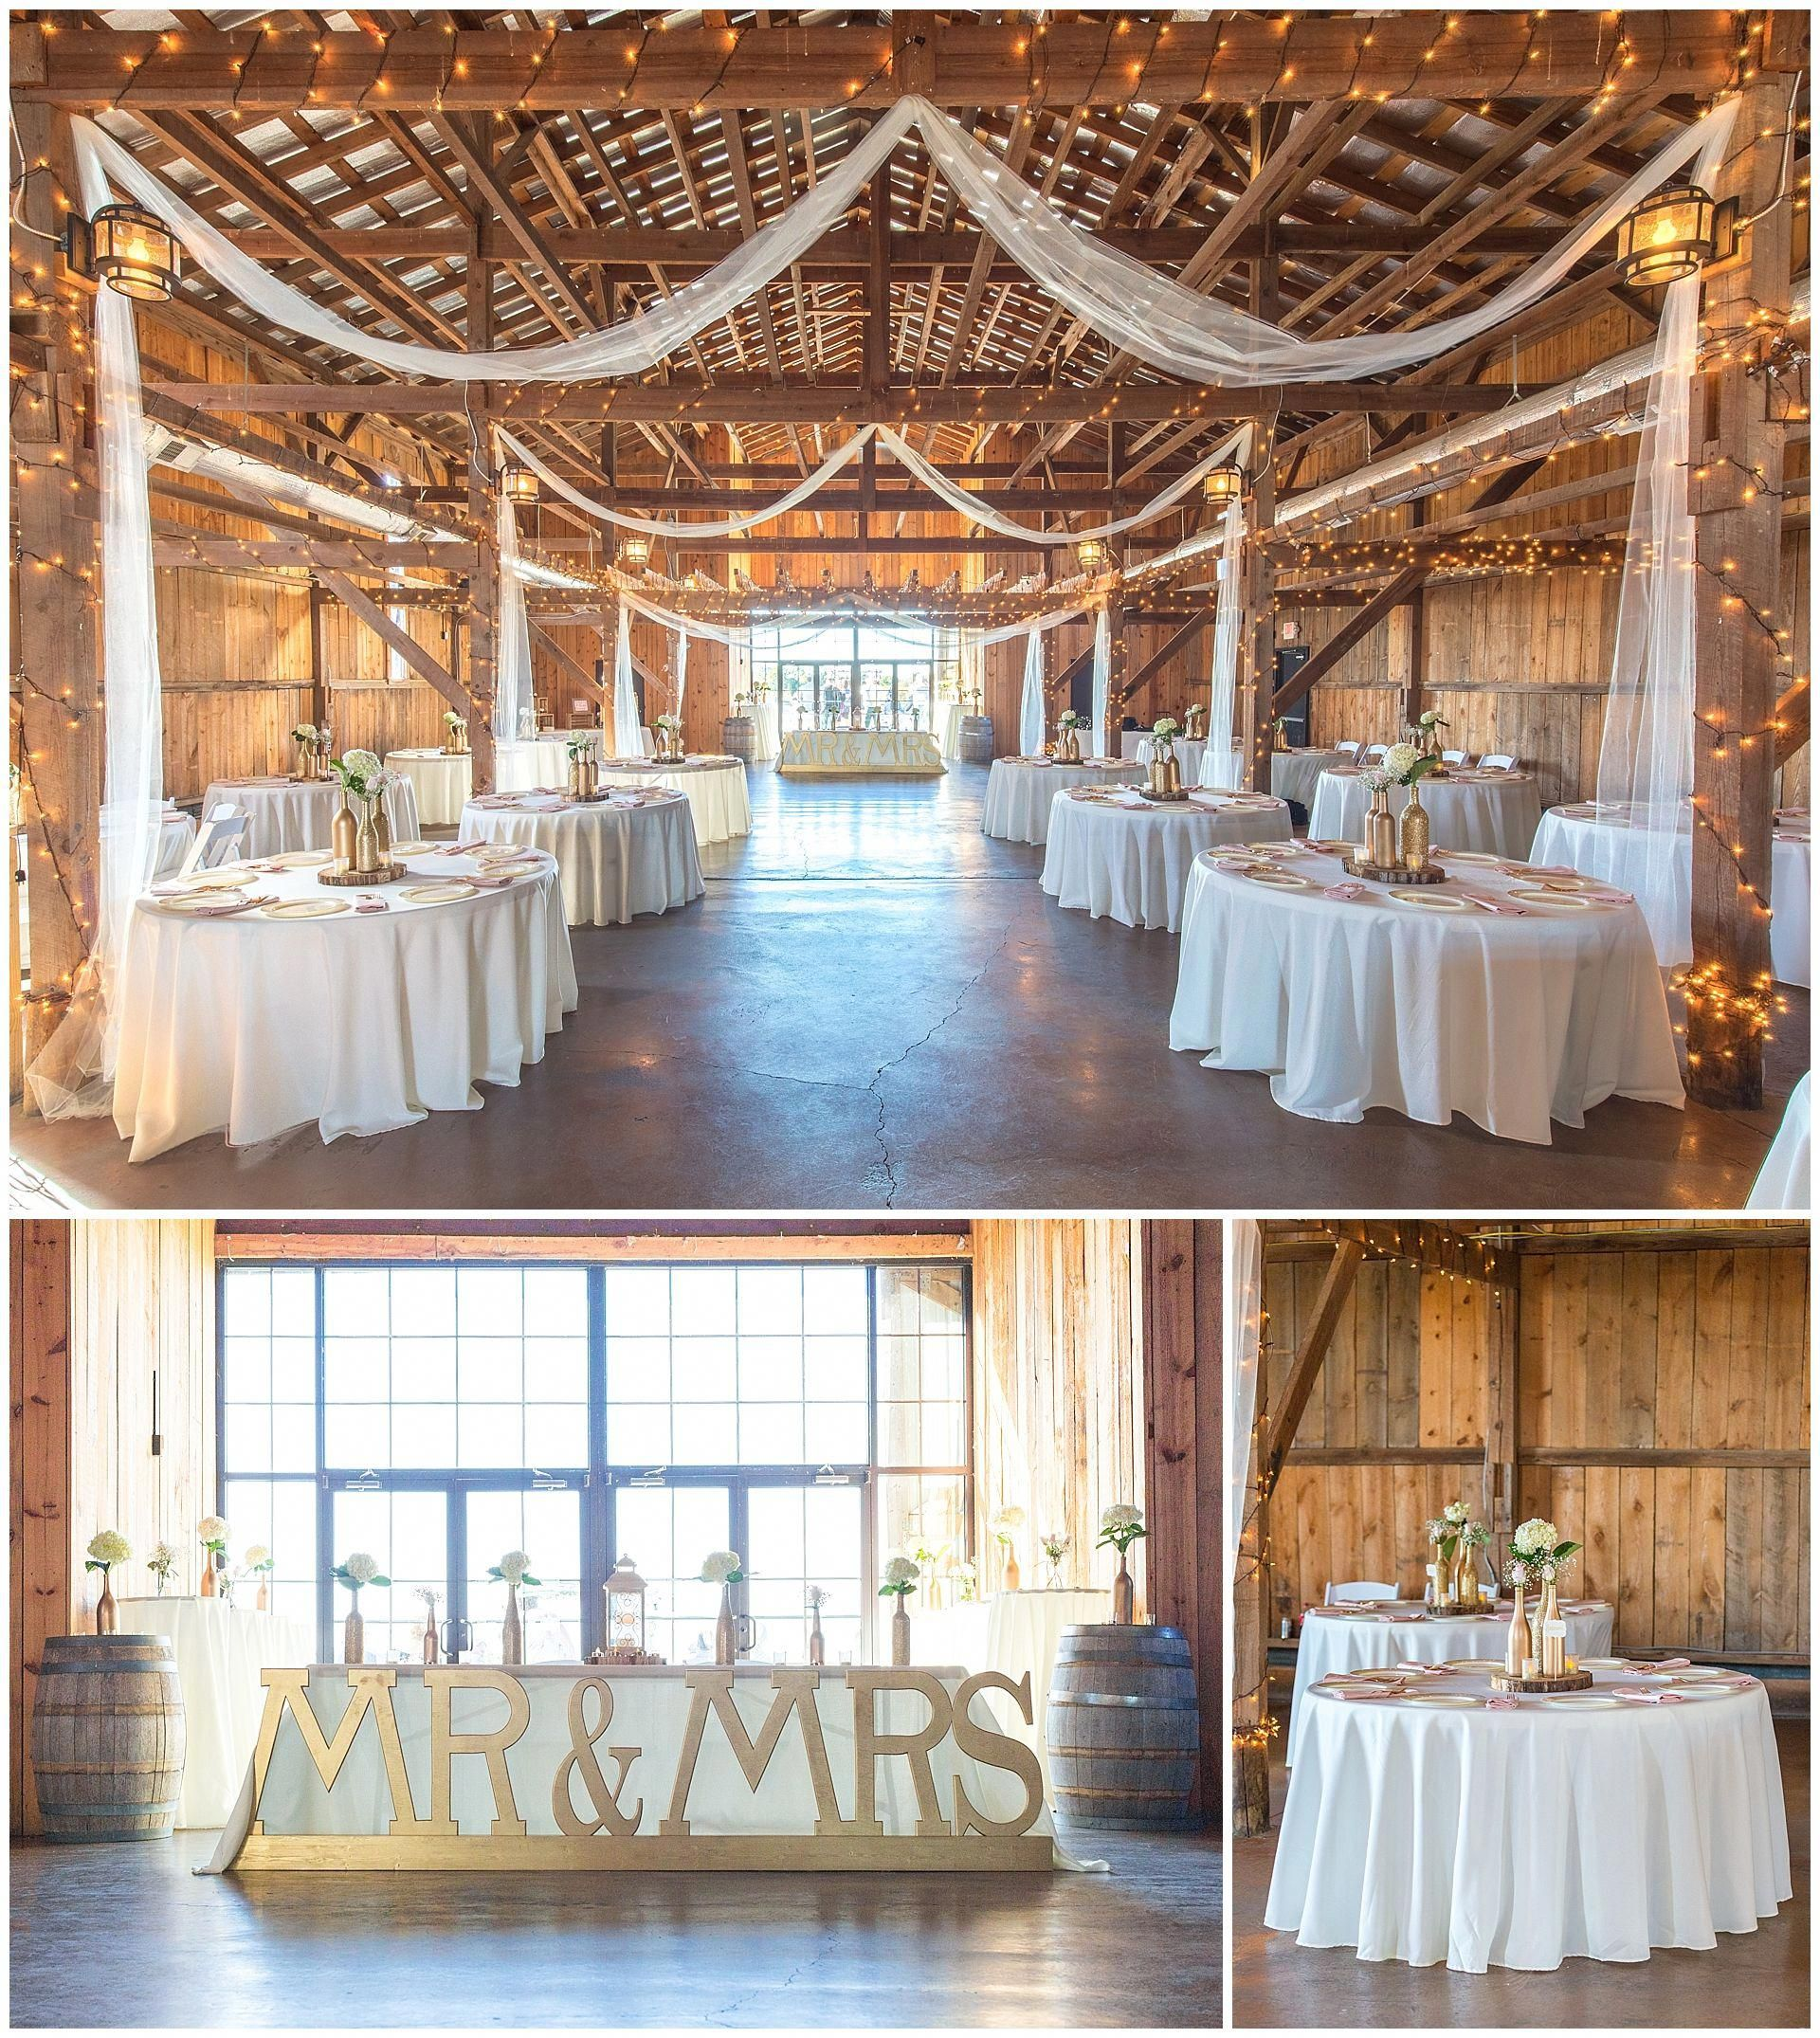 For Well Designed But Affordable Marriage Event Accessories And Style From Experience Decors To Wedding Hall Decorations Wedding Hall Fun Wedding Photography